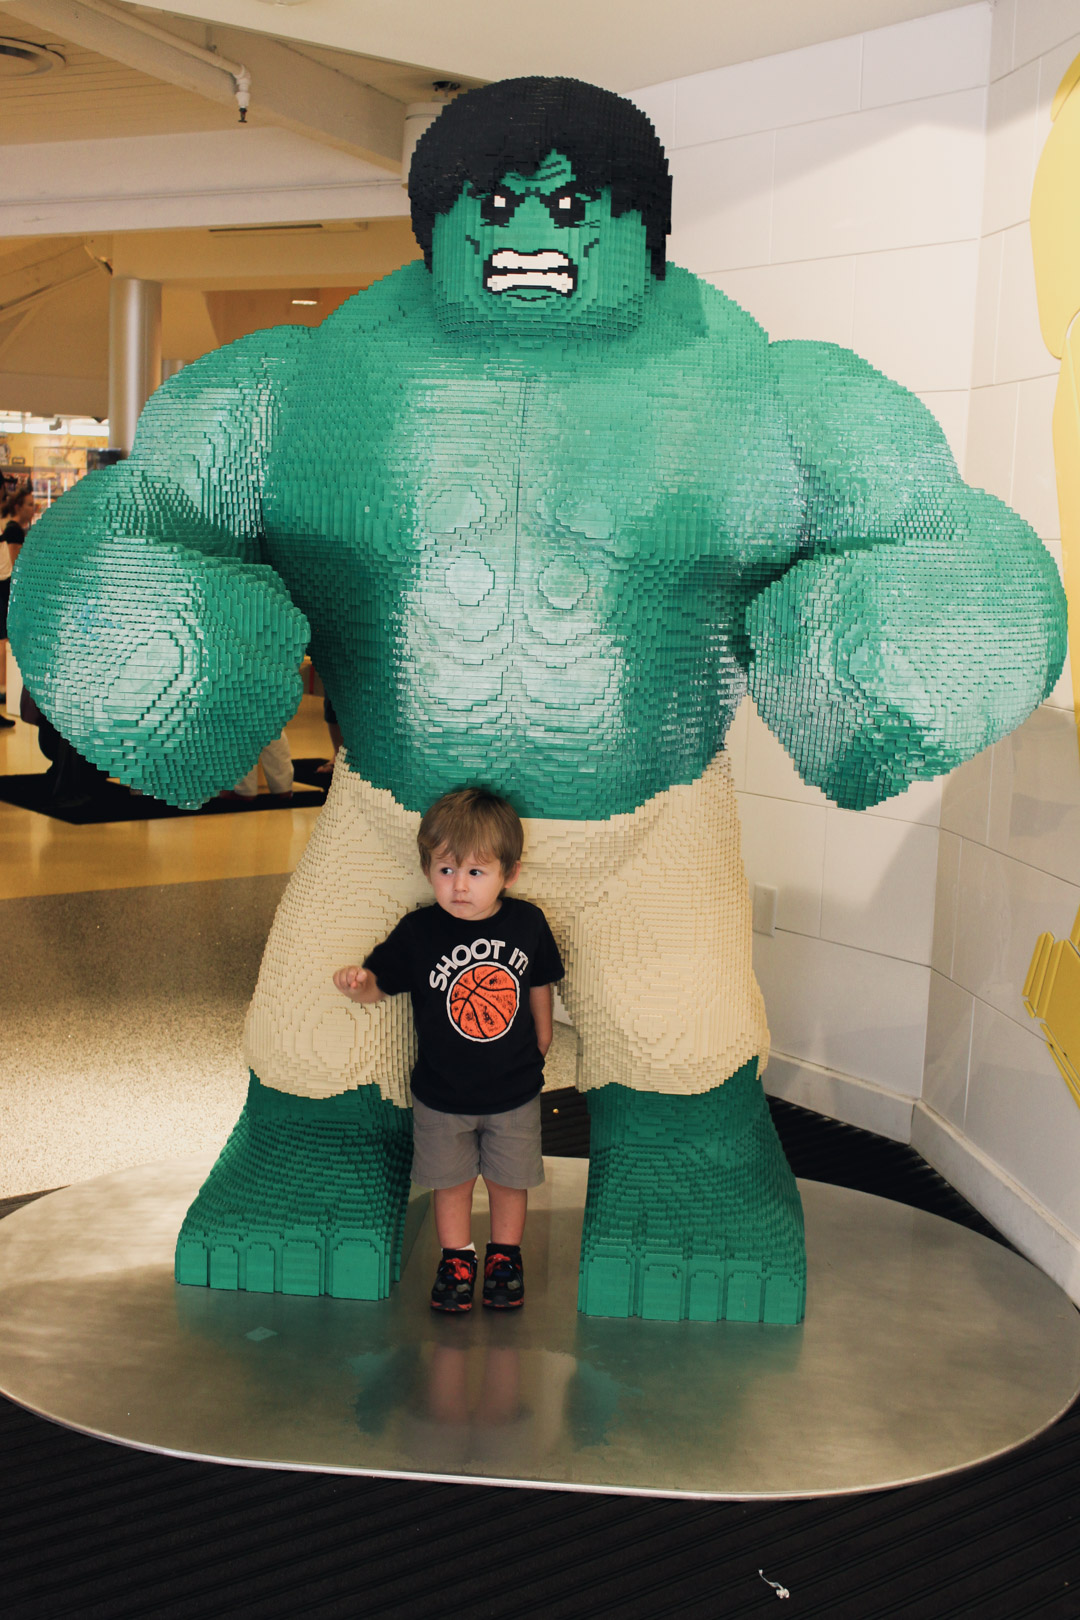 Family trip to Disney and Lego Land with Toddlers: Tips and Hacks | The Fashionable Maven